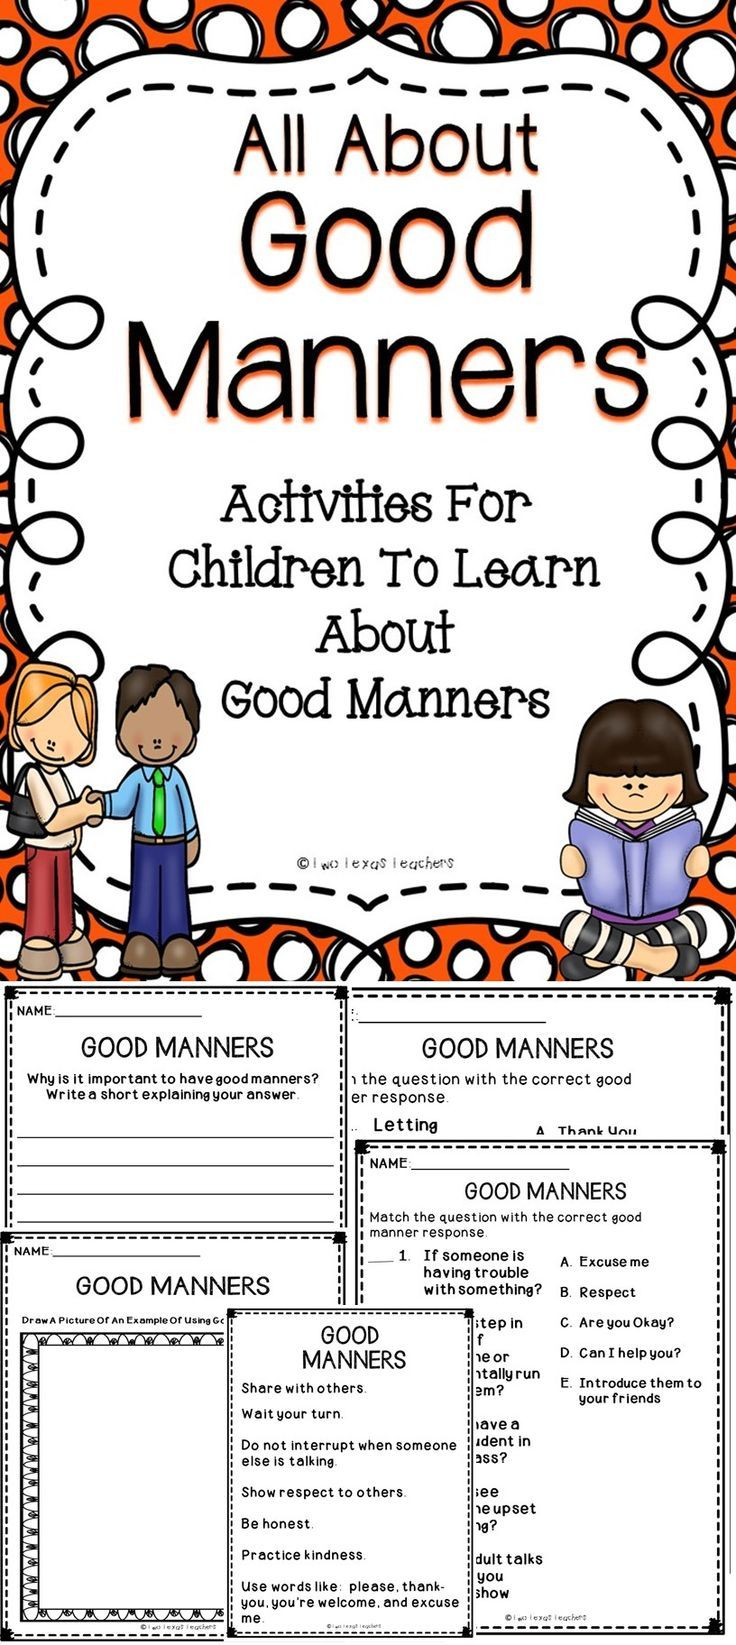 Help students learn positive behaviors with this All About Good Manners activity book. #behavior